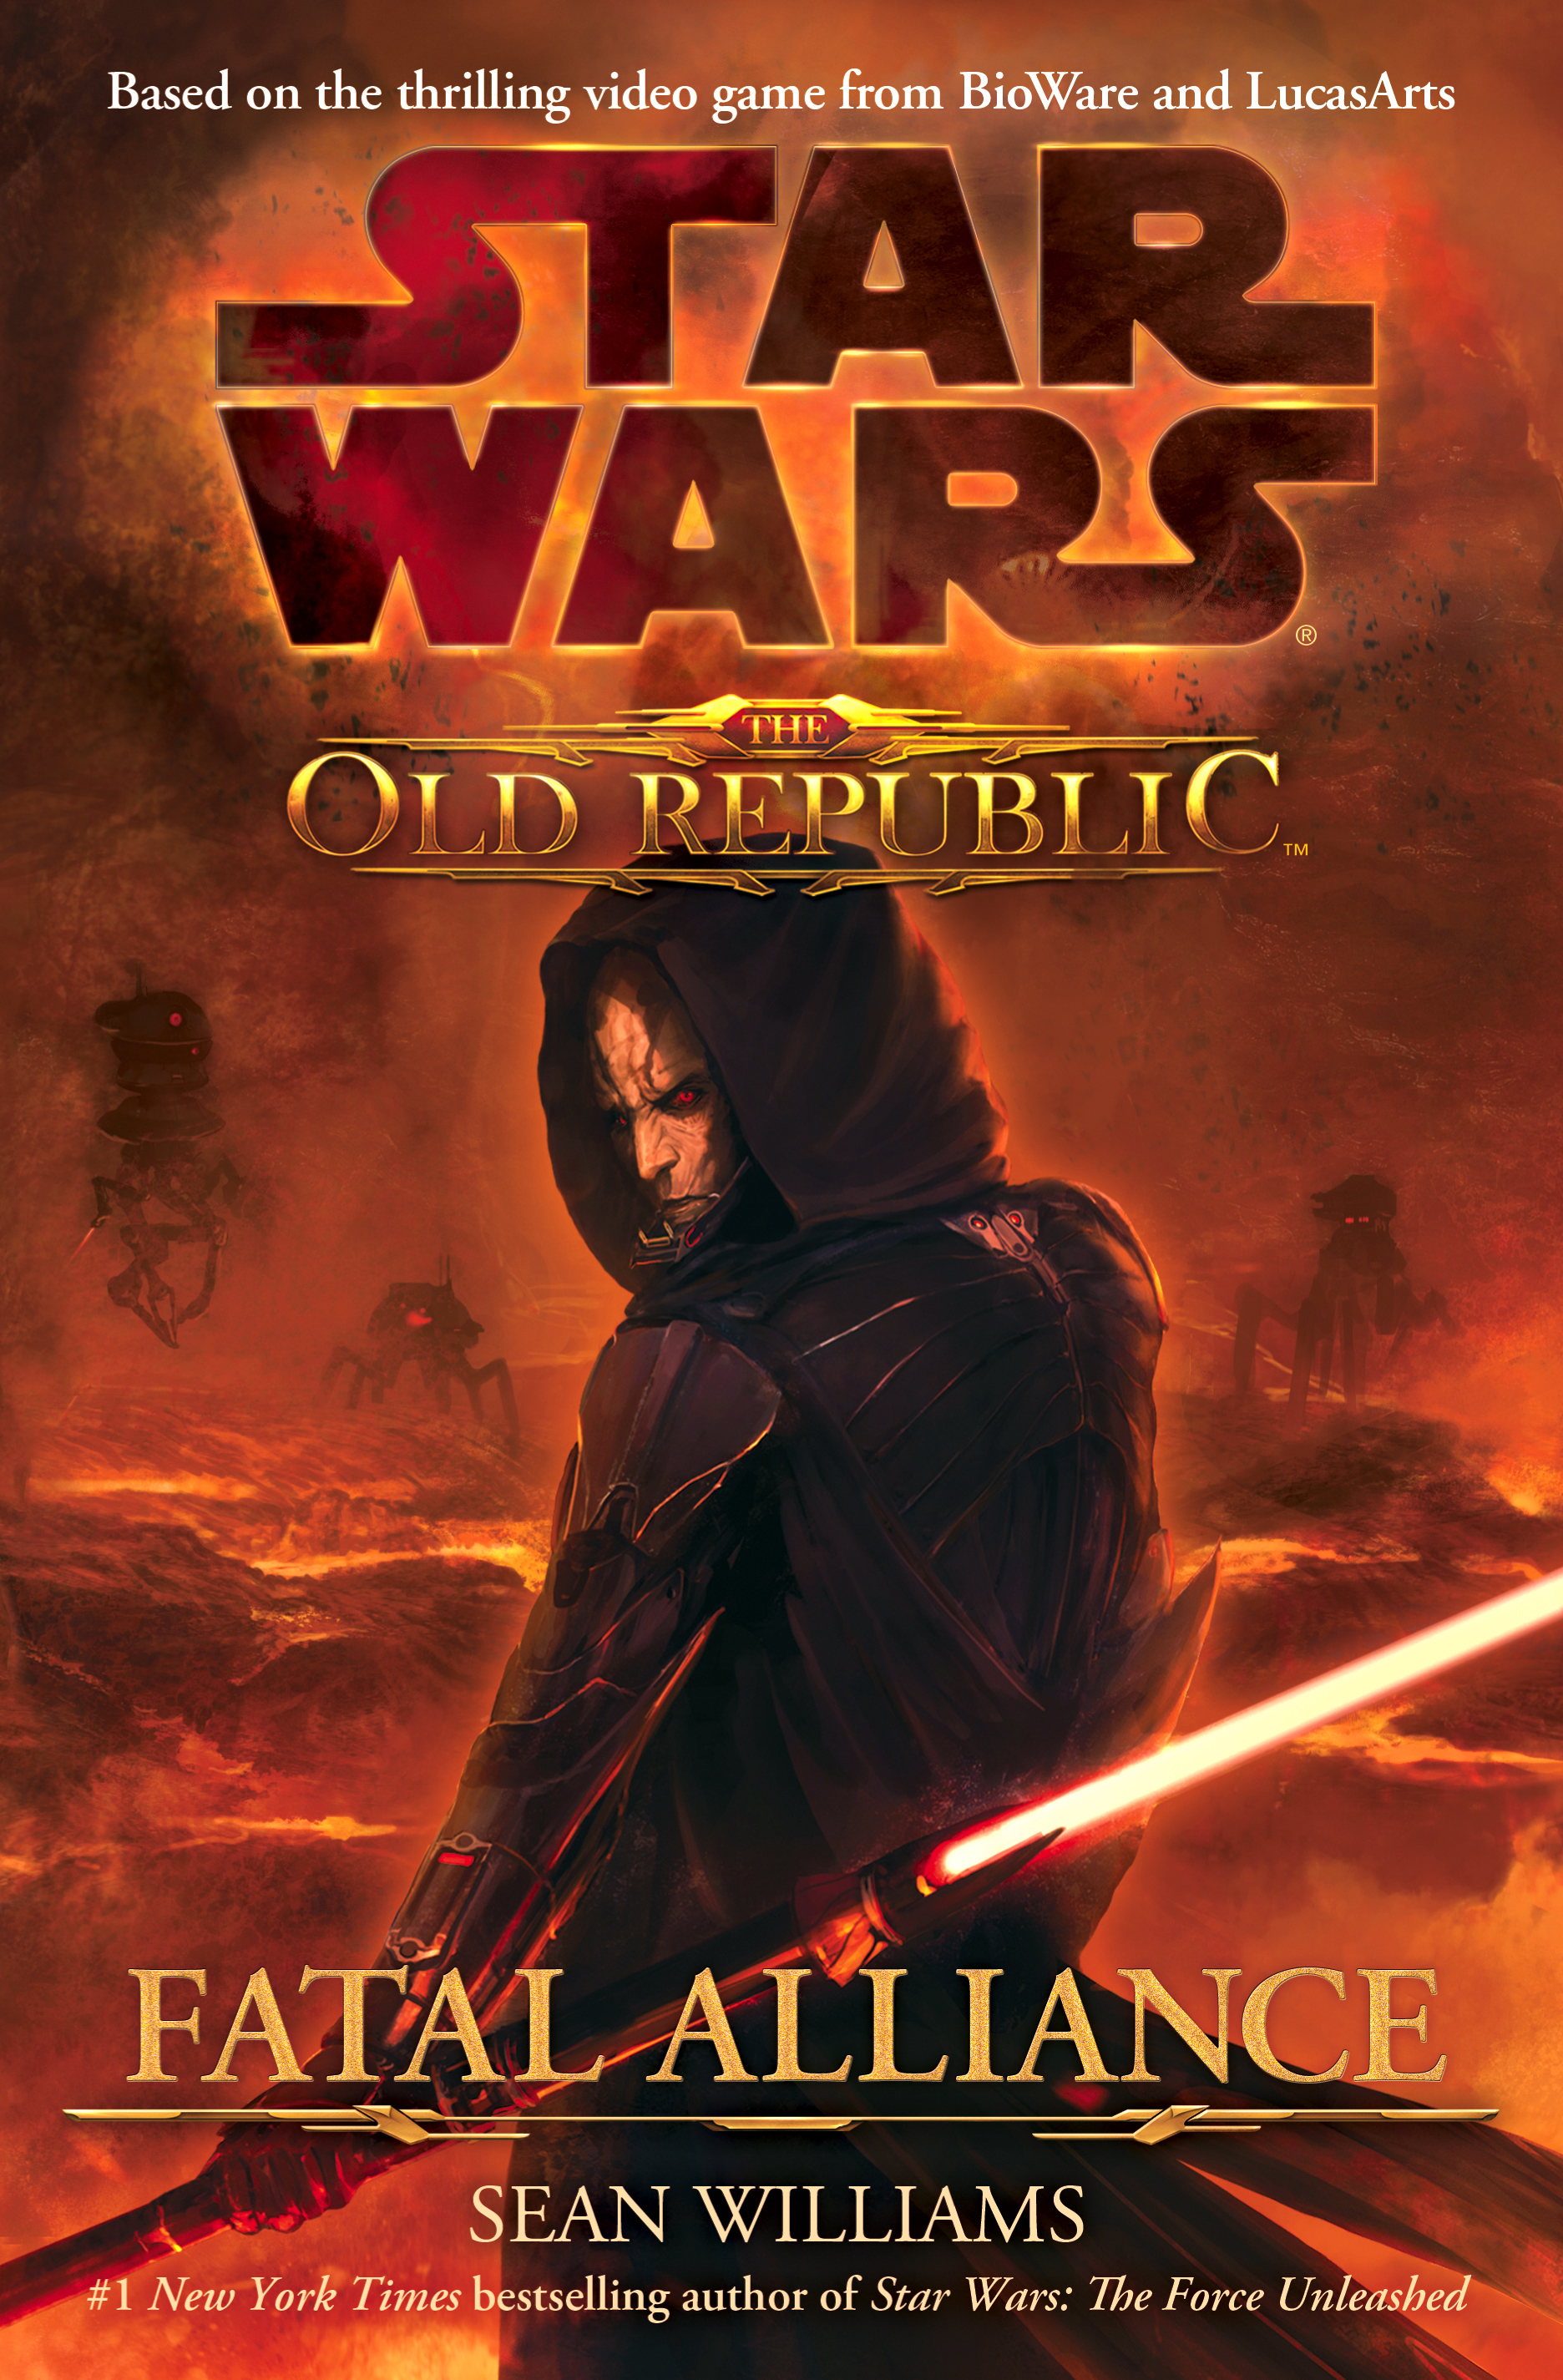 Star Wars The Old Republic: Fatal Alliance